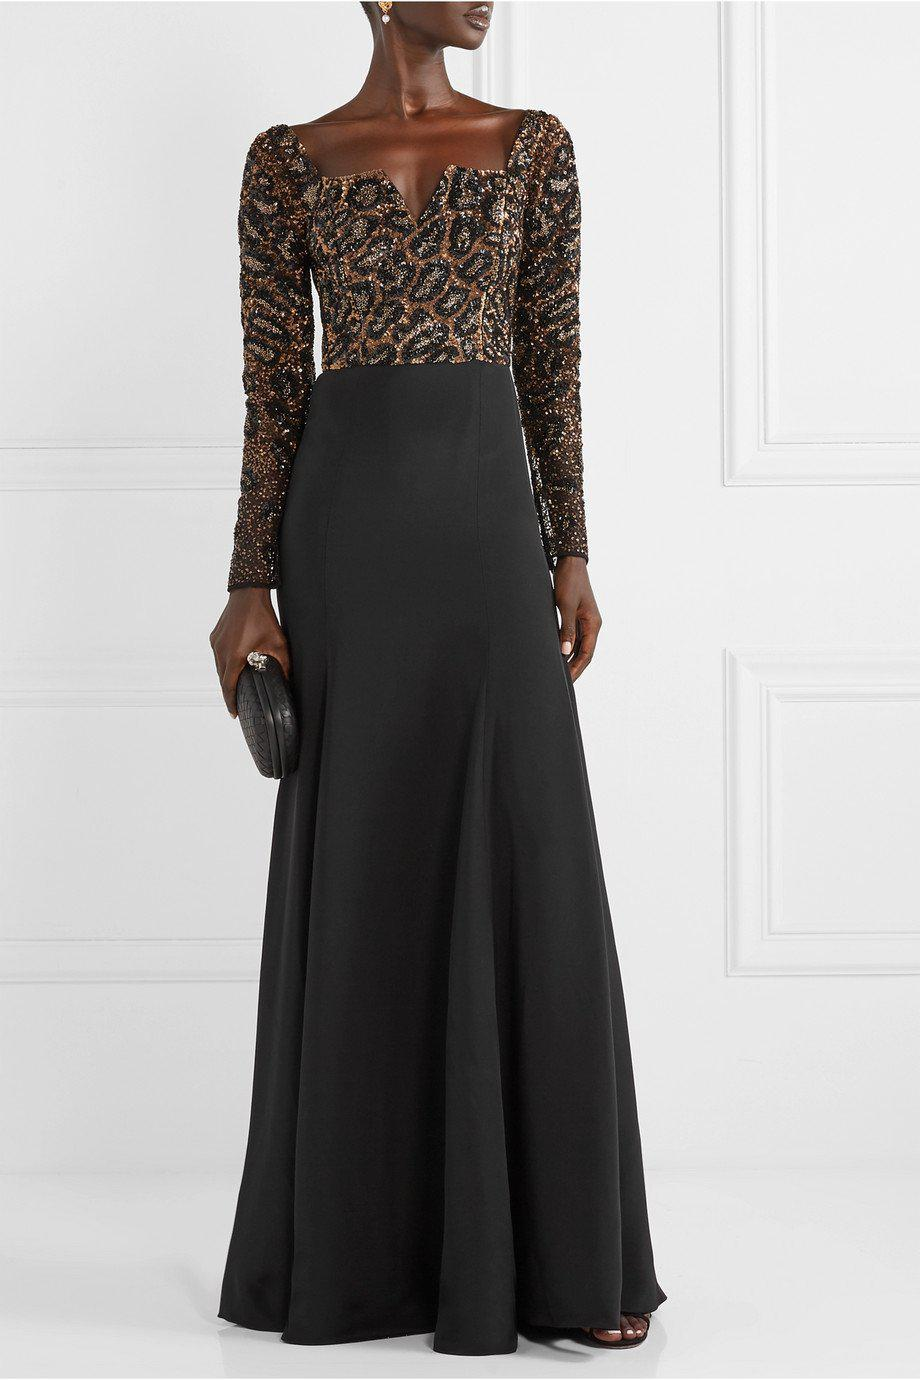 CHEETAH OFF THE SHOULDER GOWN